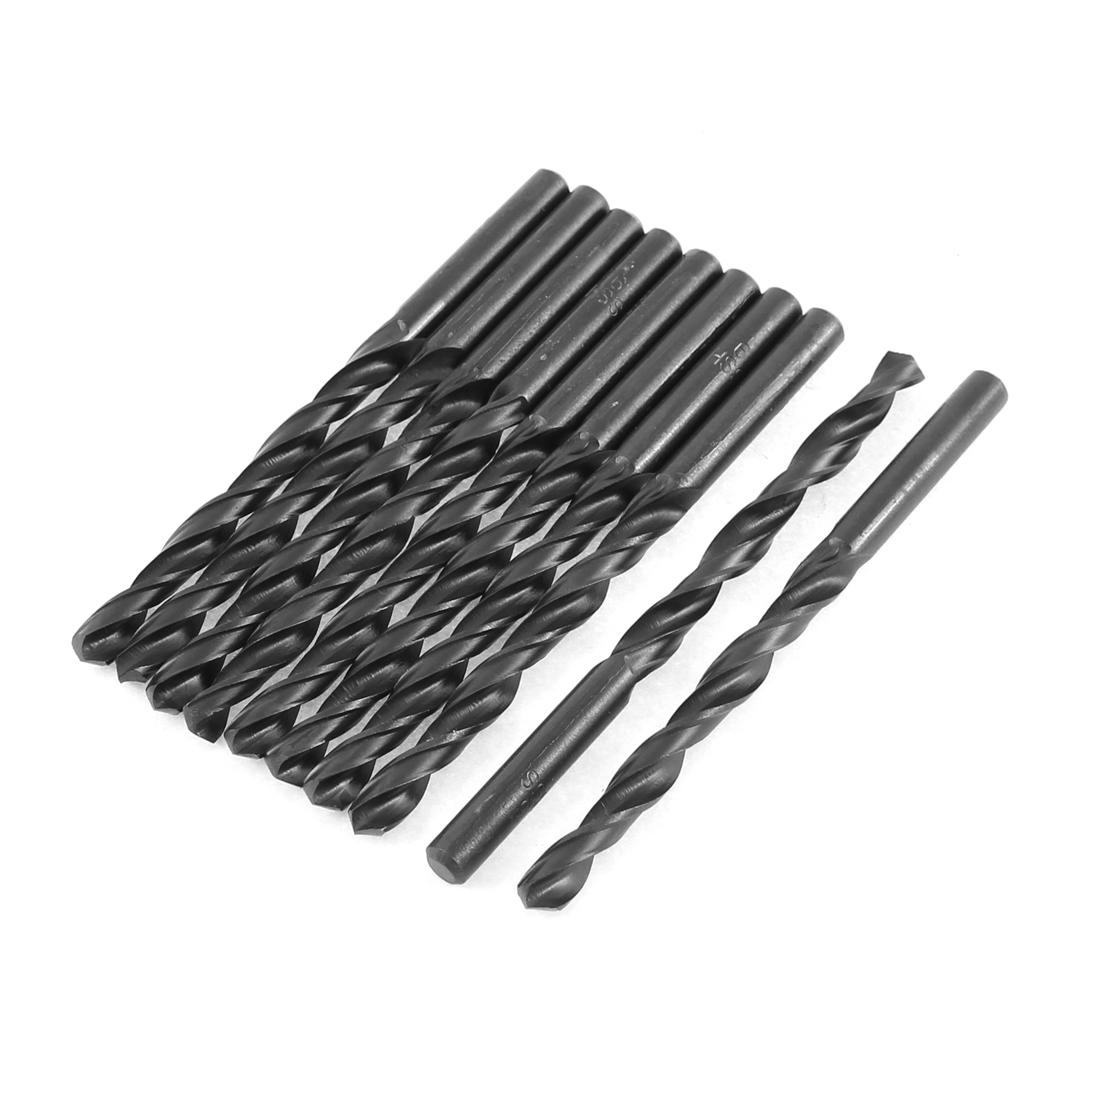 Подробнее о Uxcell 10Pcs 6Mm 7Mm 8Mm Cutting Dia 90Mm Length Hss Straight Shank Twist Drill Bit Black Length . | 101mm | 102mm | 106mm | uxcell 7mm boring dia 10mm shank brad point solid carbide dowel drill bit